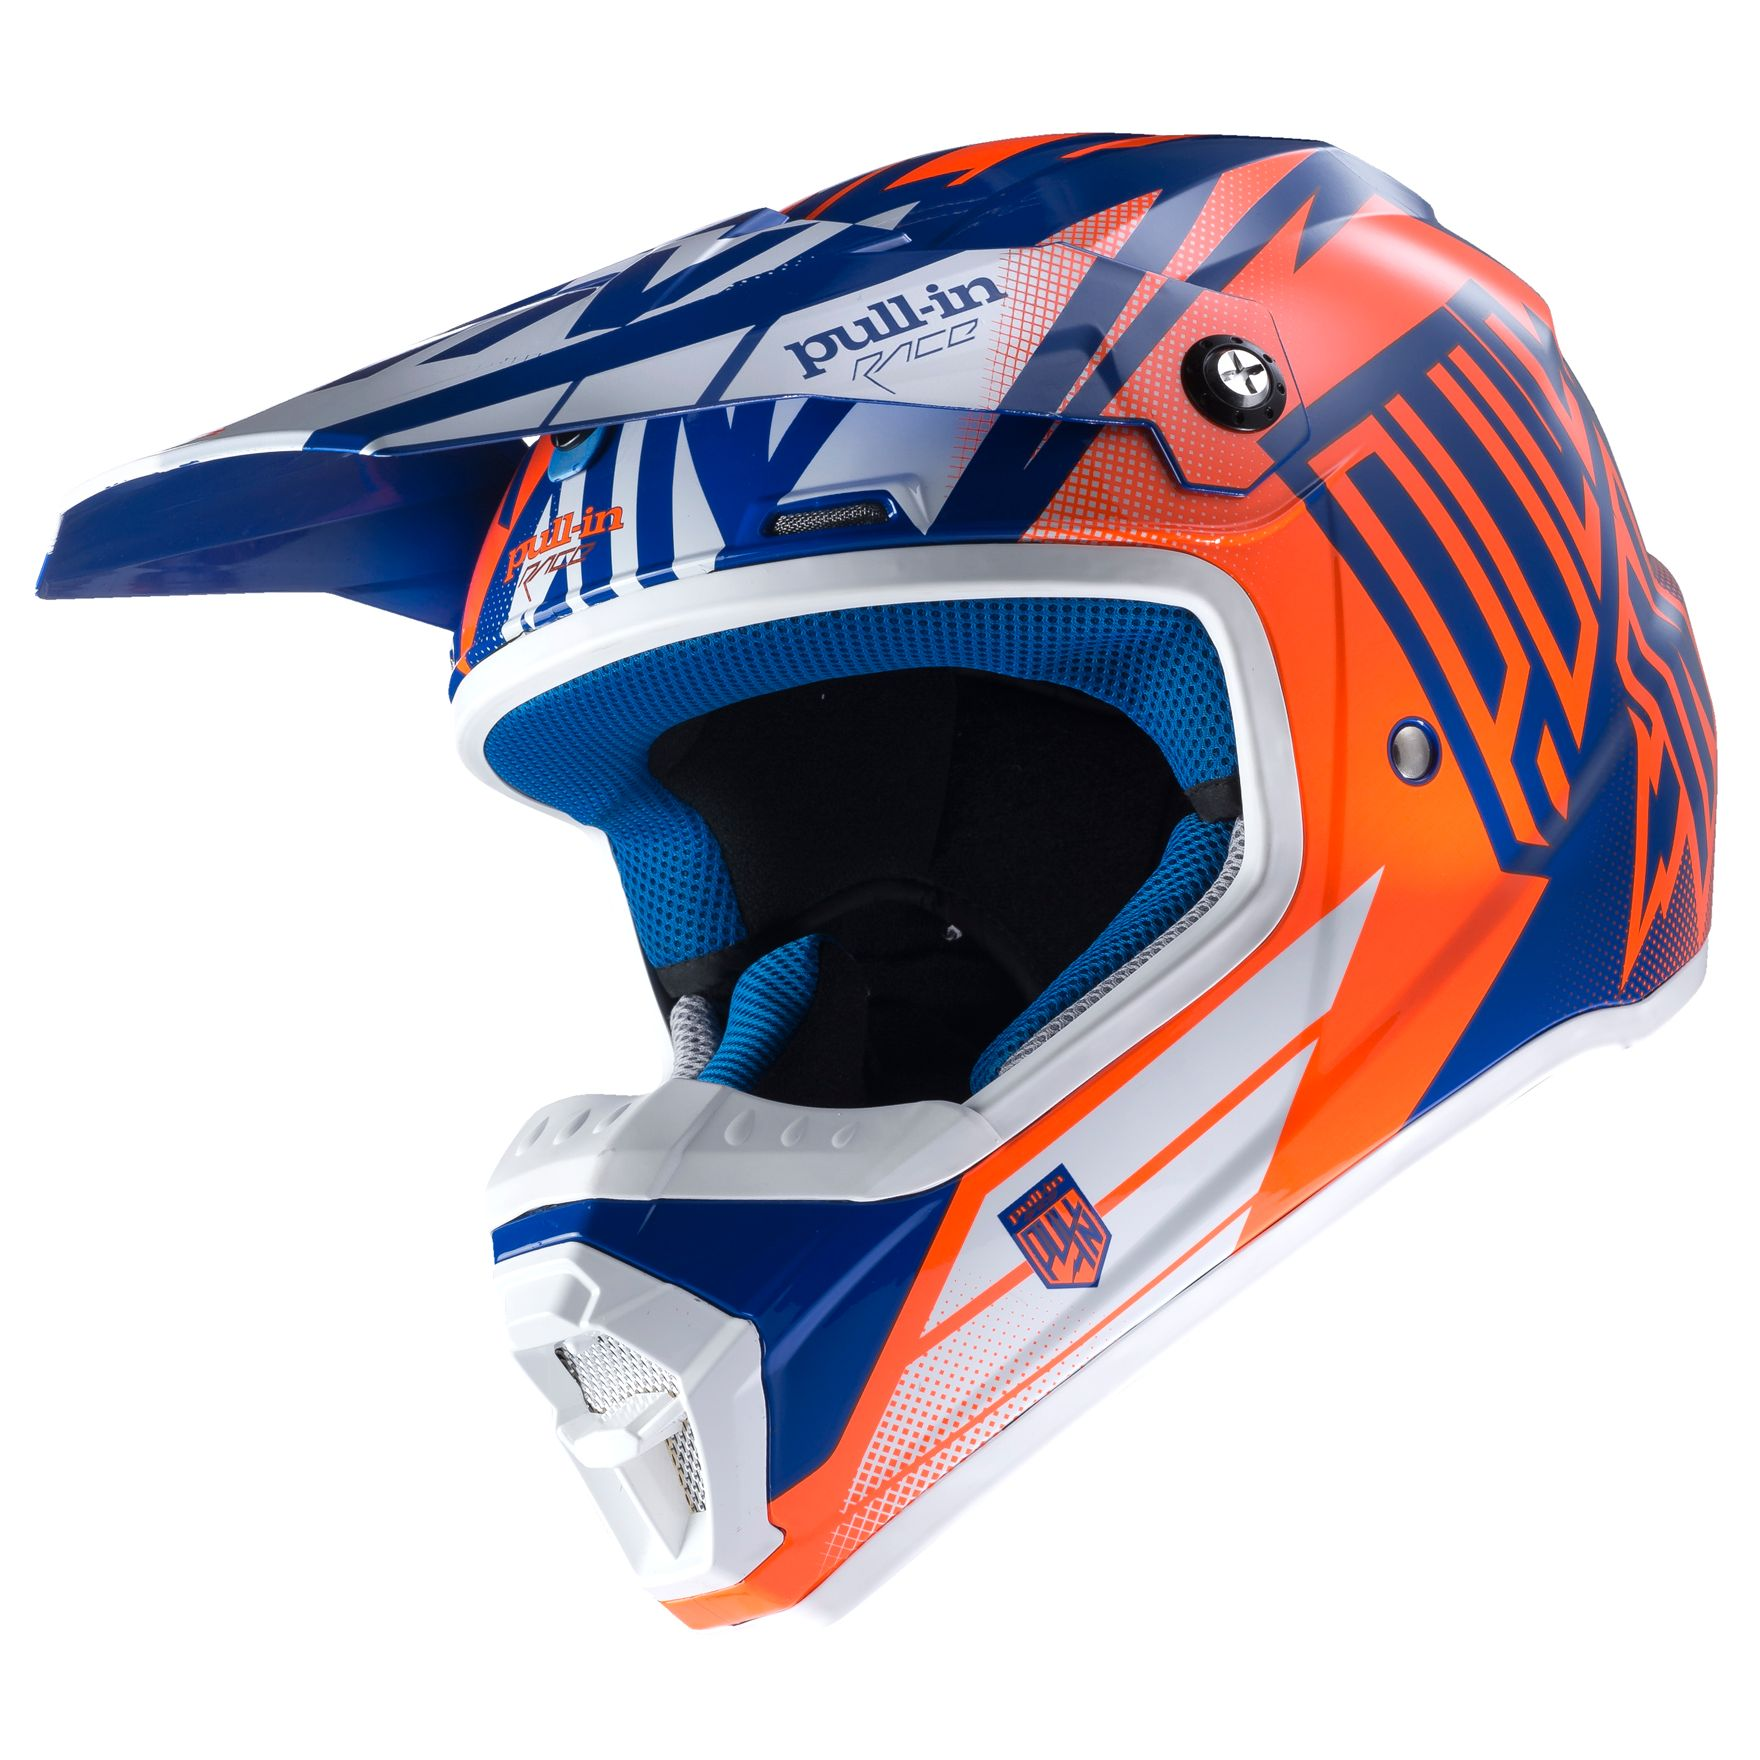 casque cross pull in destockage moto bleu orange fluo 2017 casque cross. Black Bedroom Furniture Sets. Home Design Ideas